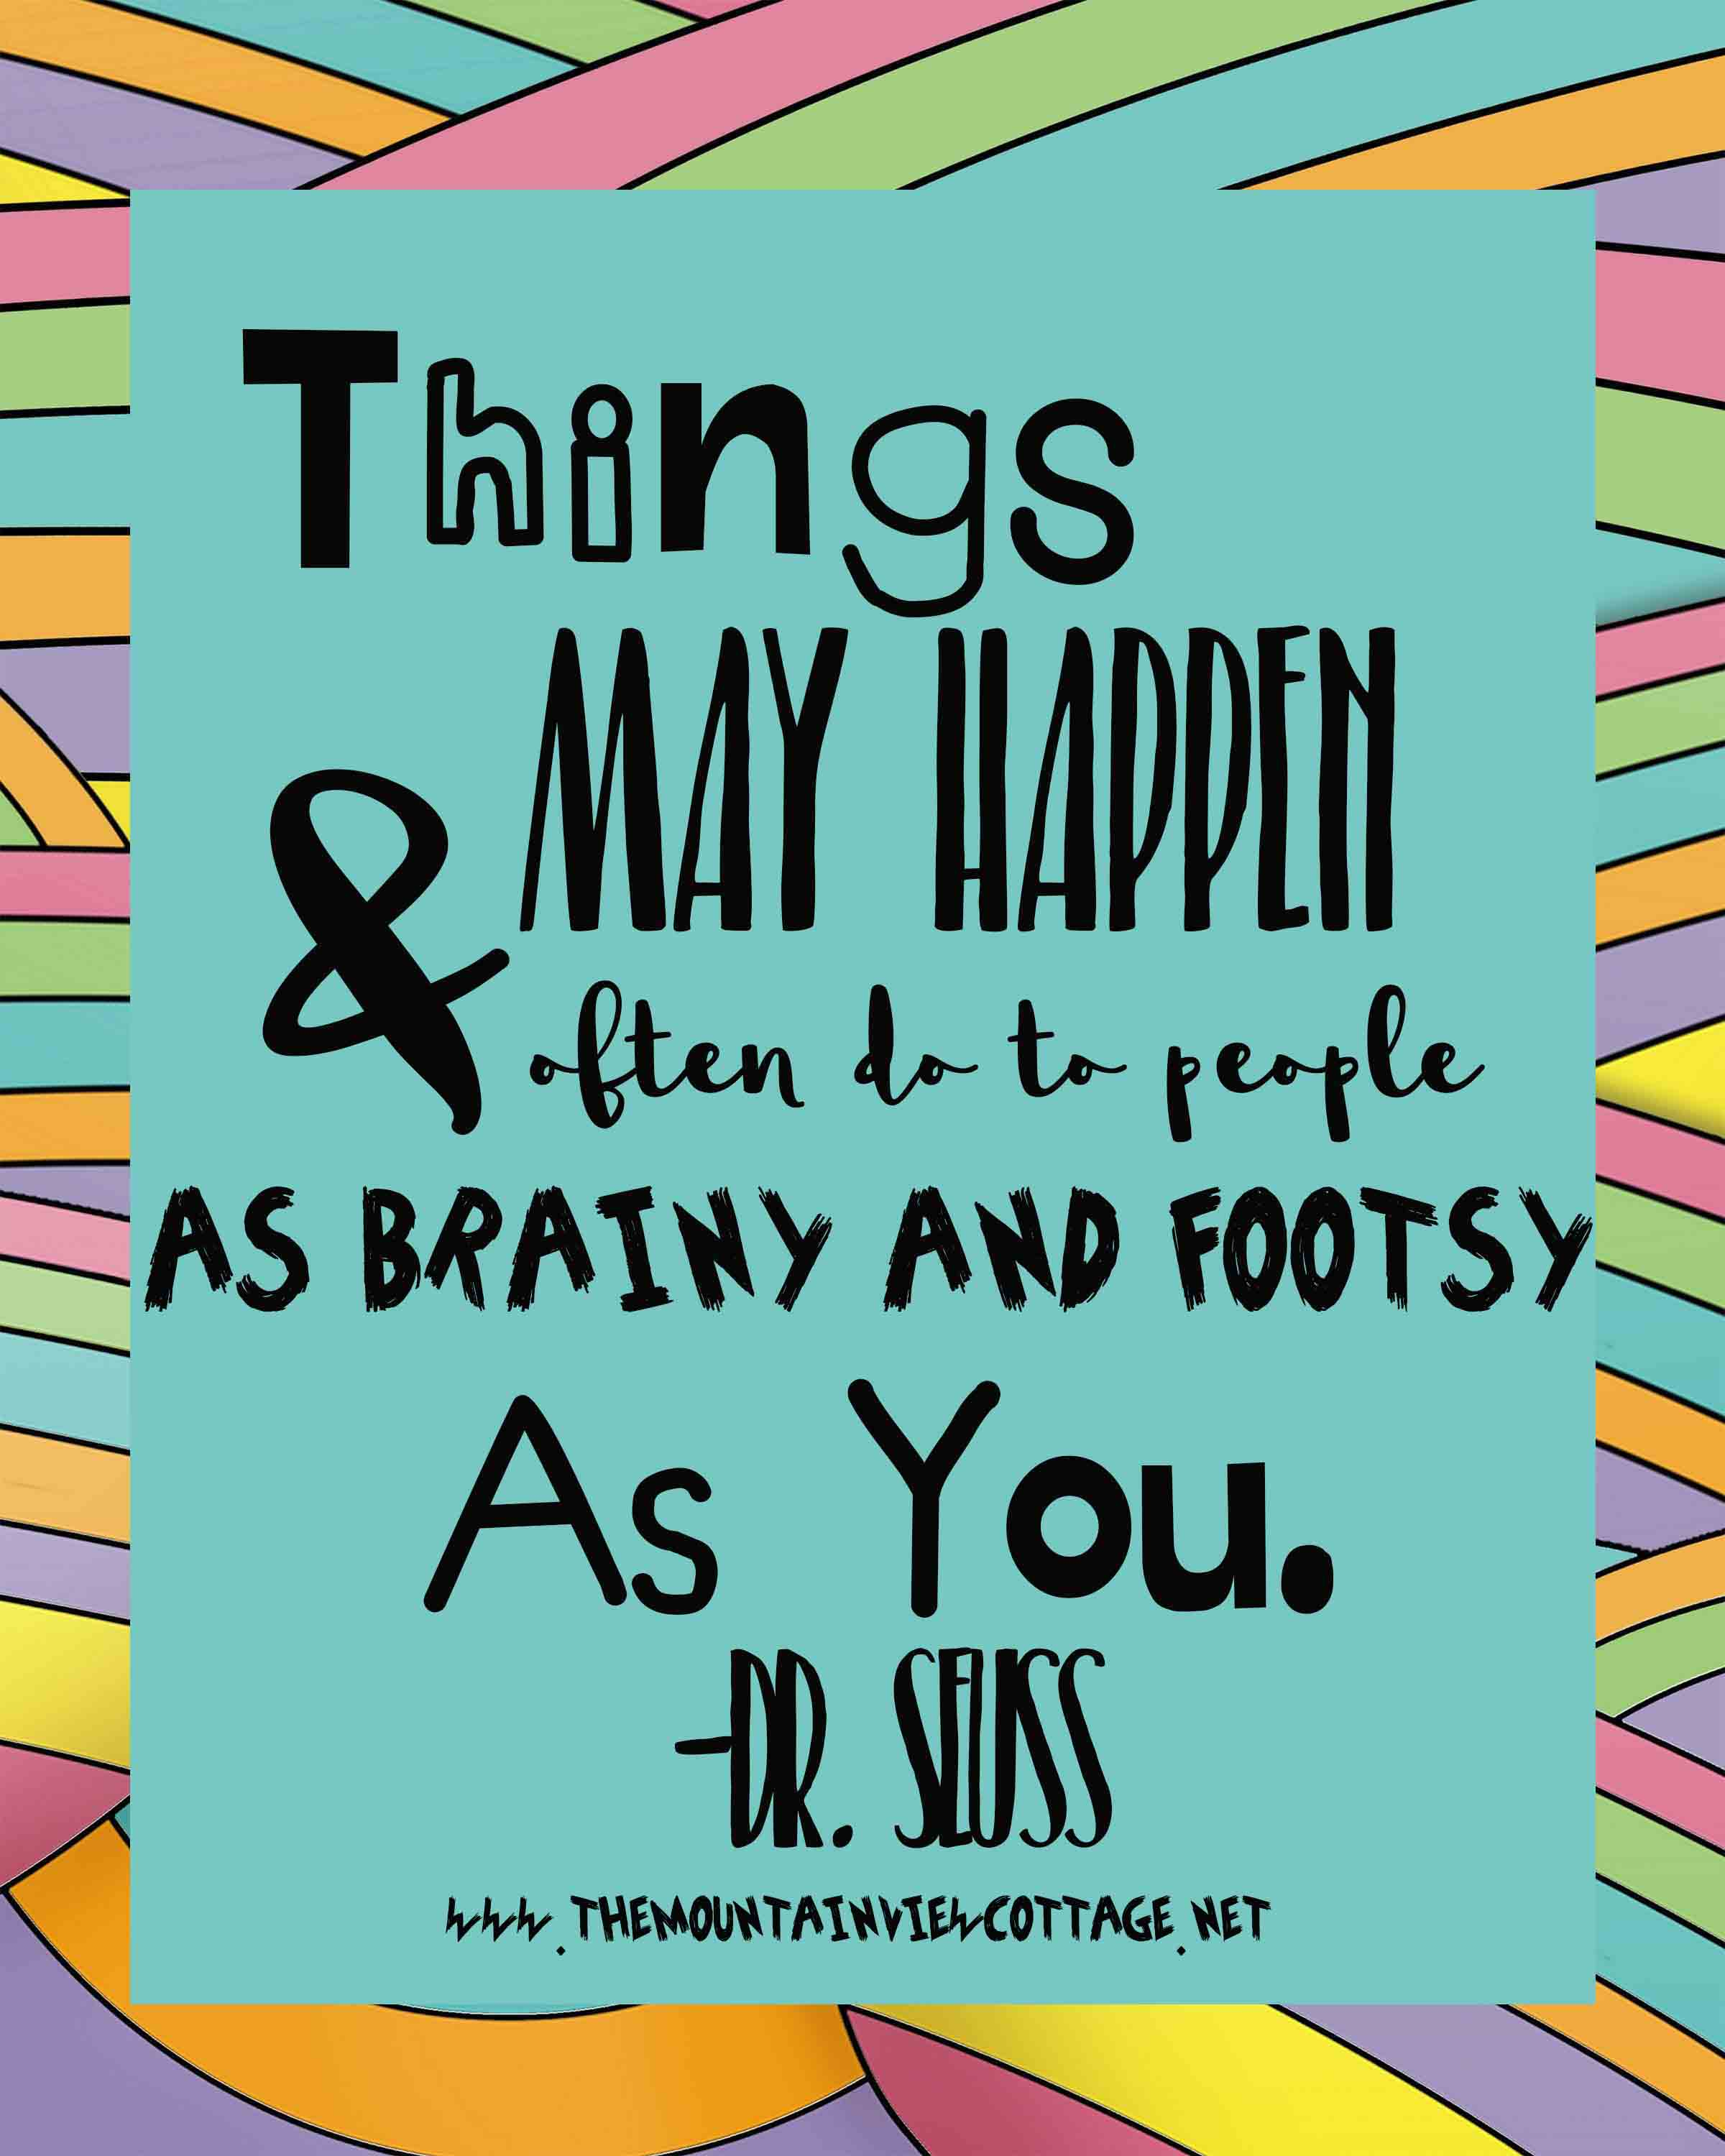 Dr.Seuss Quotes-Inspirational Quotes-Graduation Quotes-things may happen and often they do to people as brainy and footsy as you.